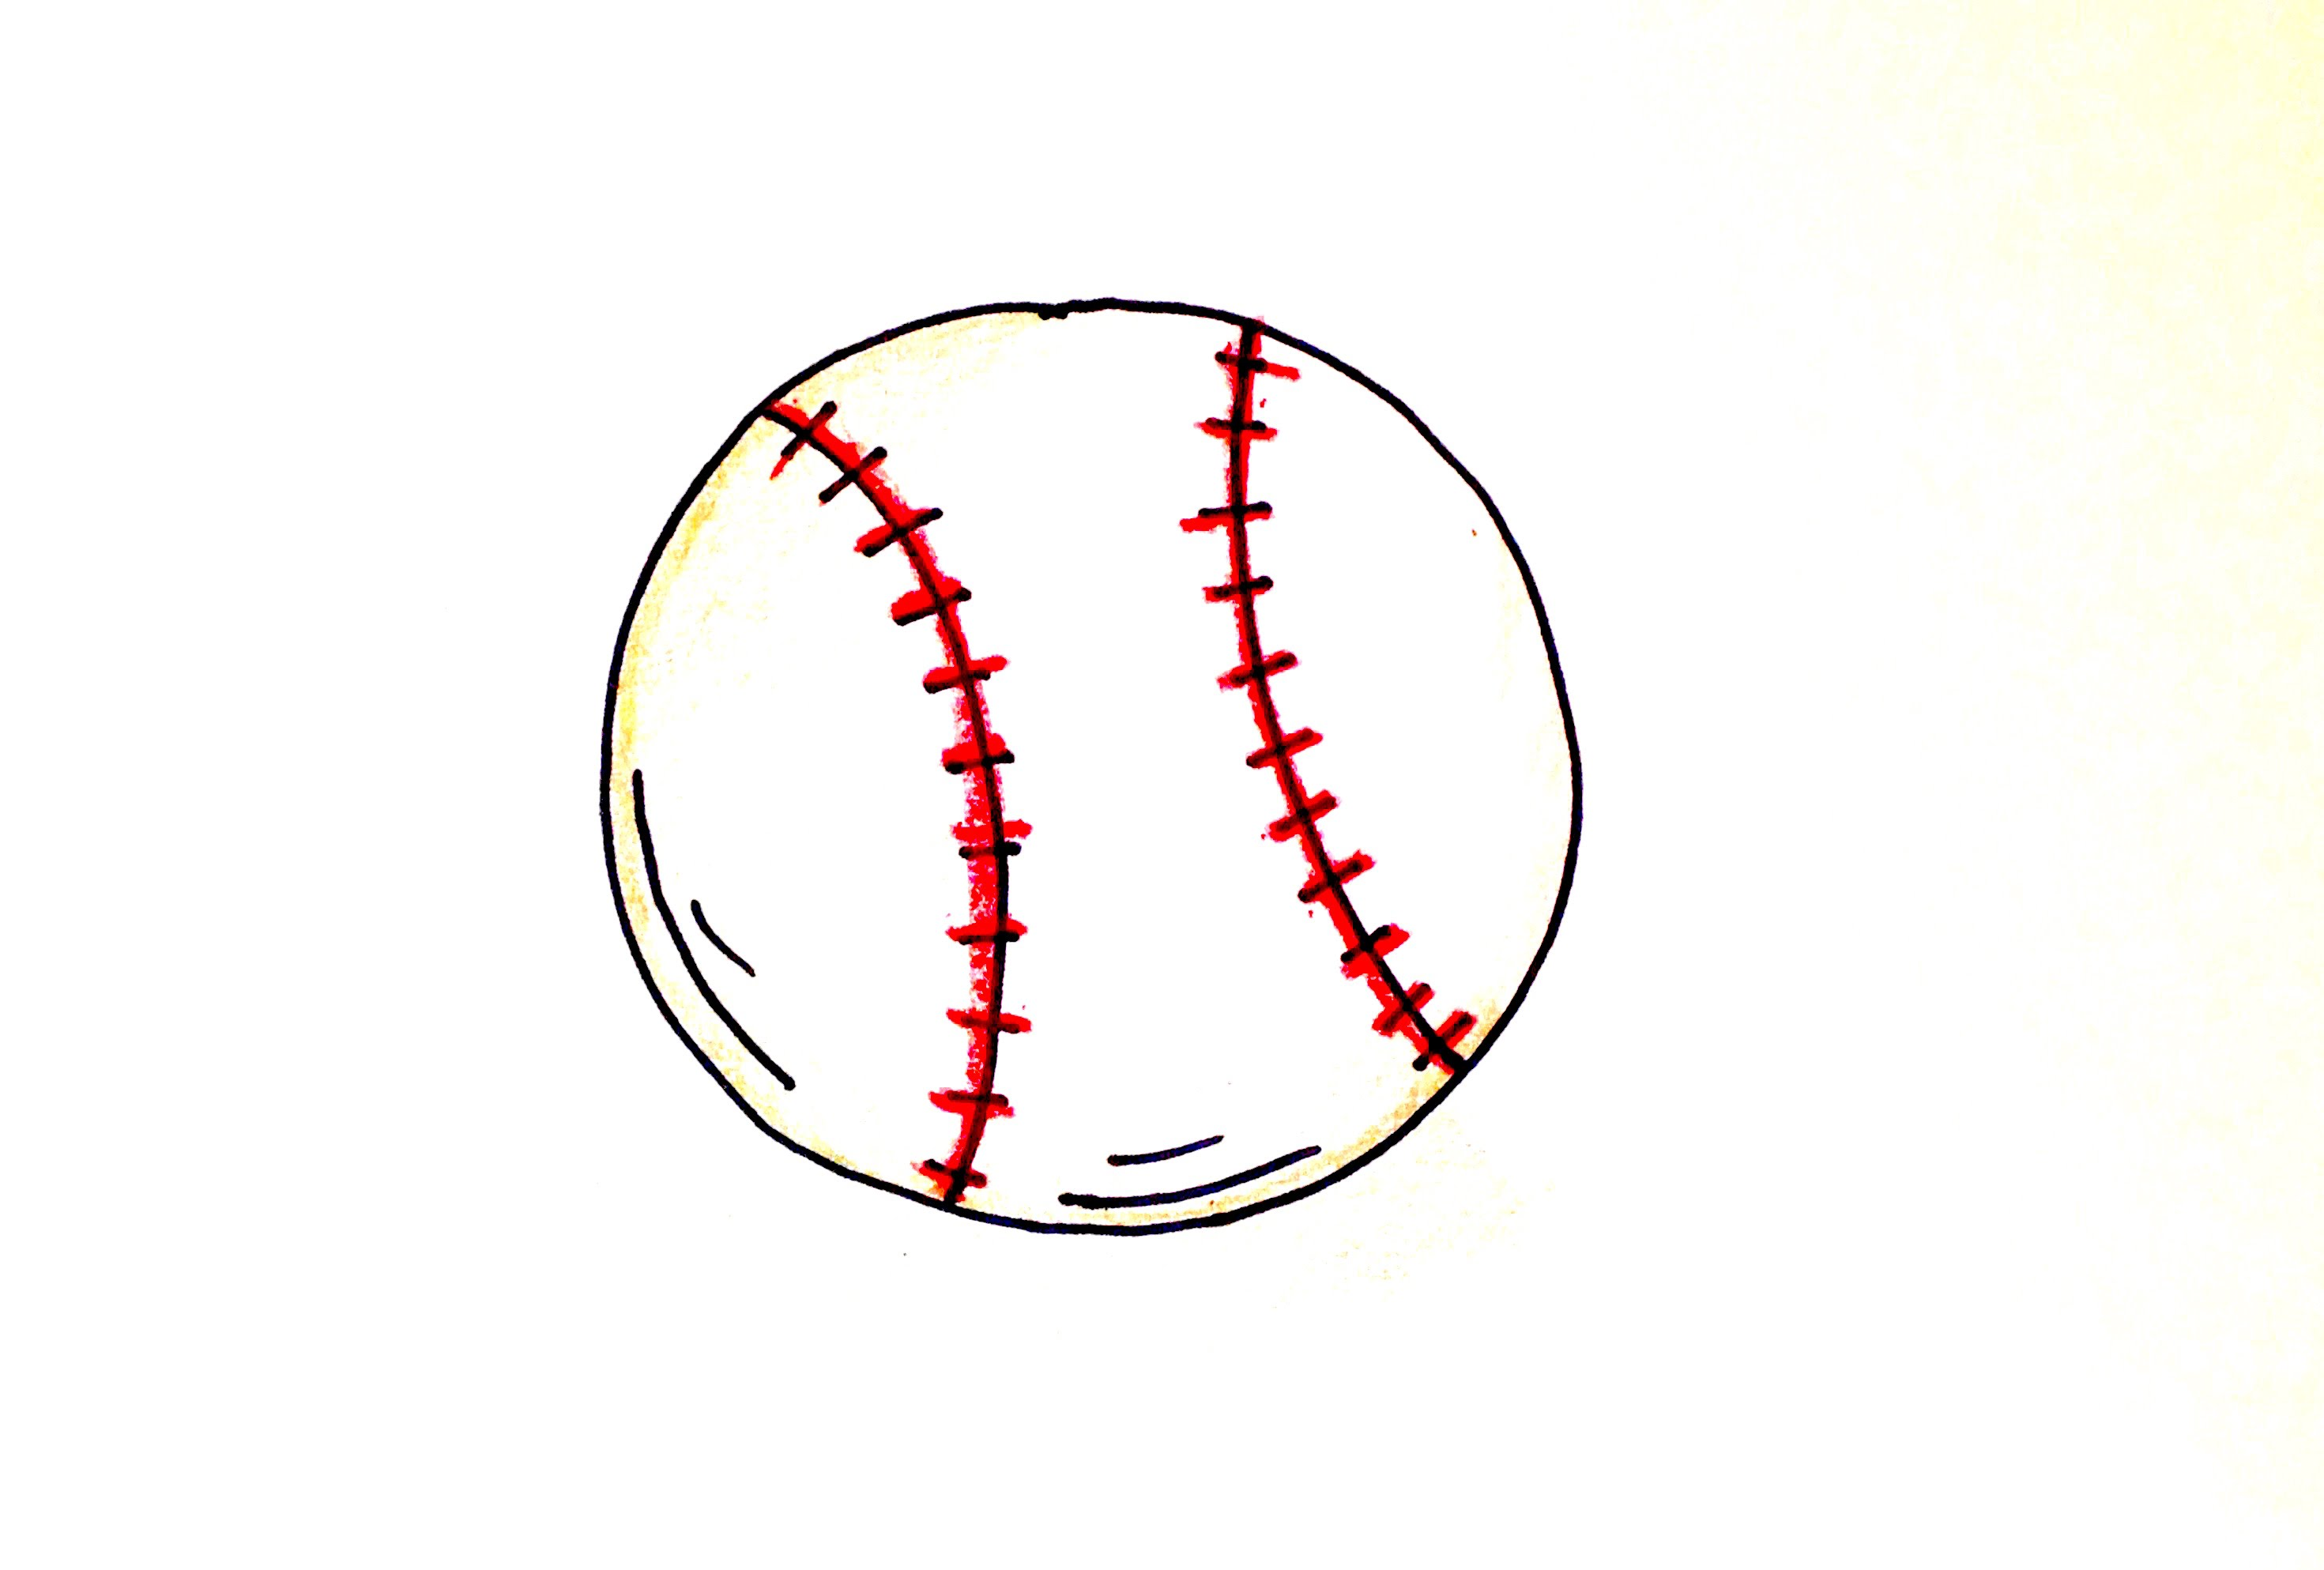 2941x1987 Drawing Lesson How To Draw A Baseball